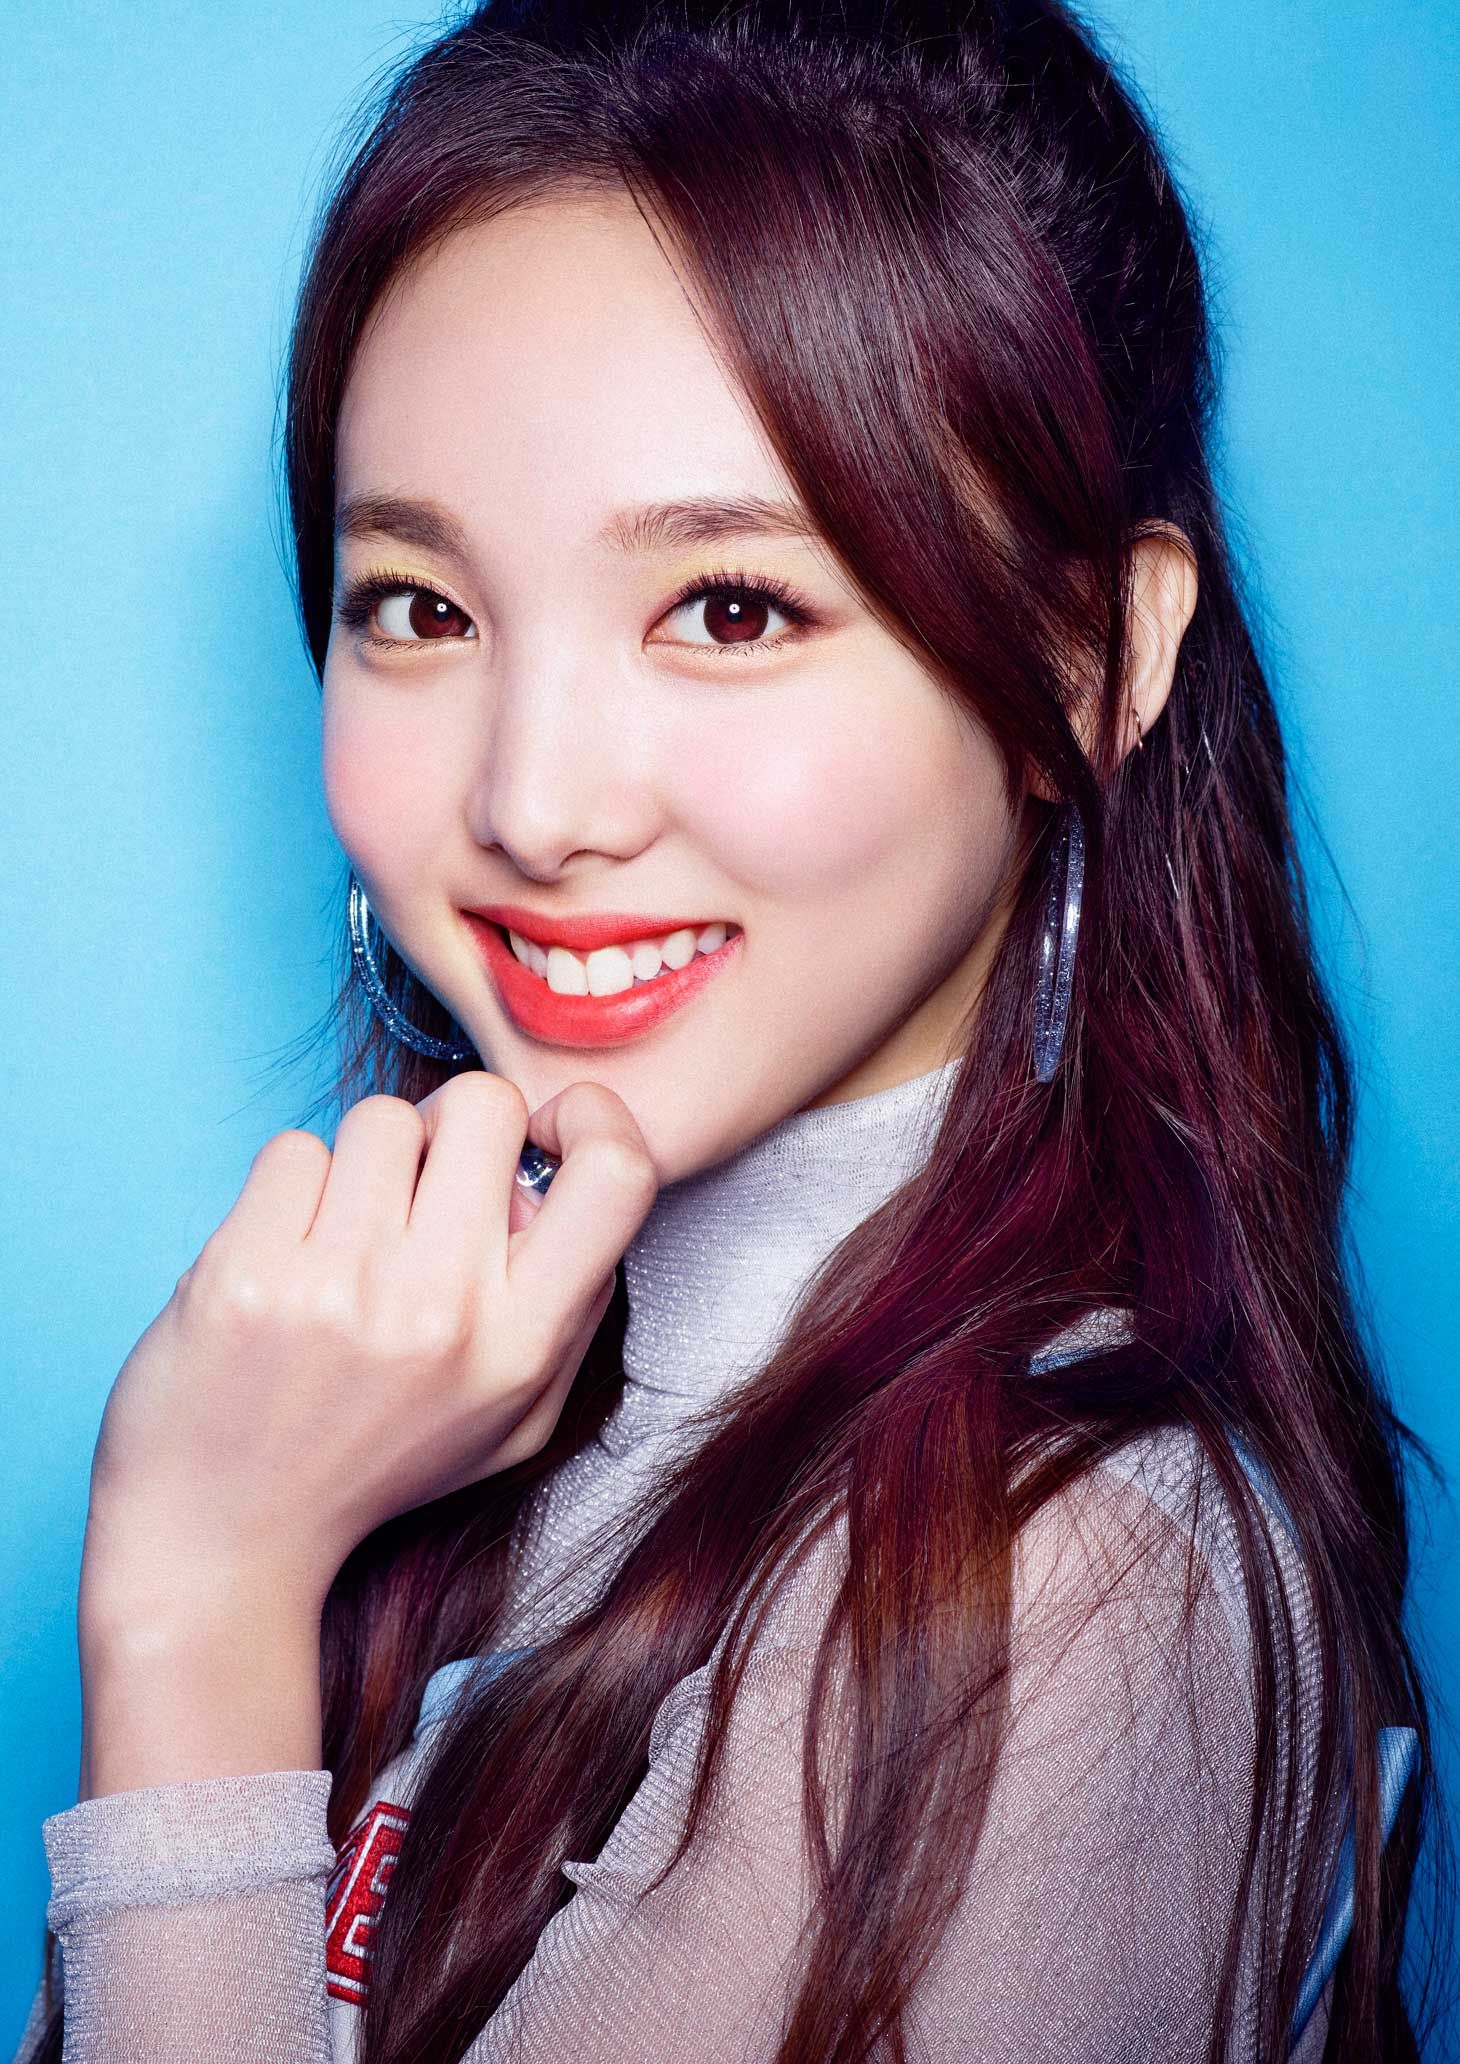 Twice Twice Teasers Allkpop Forums Nayeon Asian Beauty Beauty